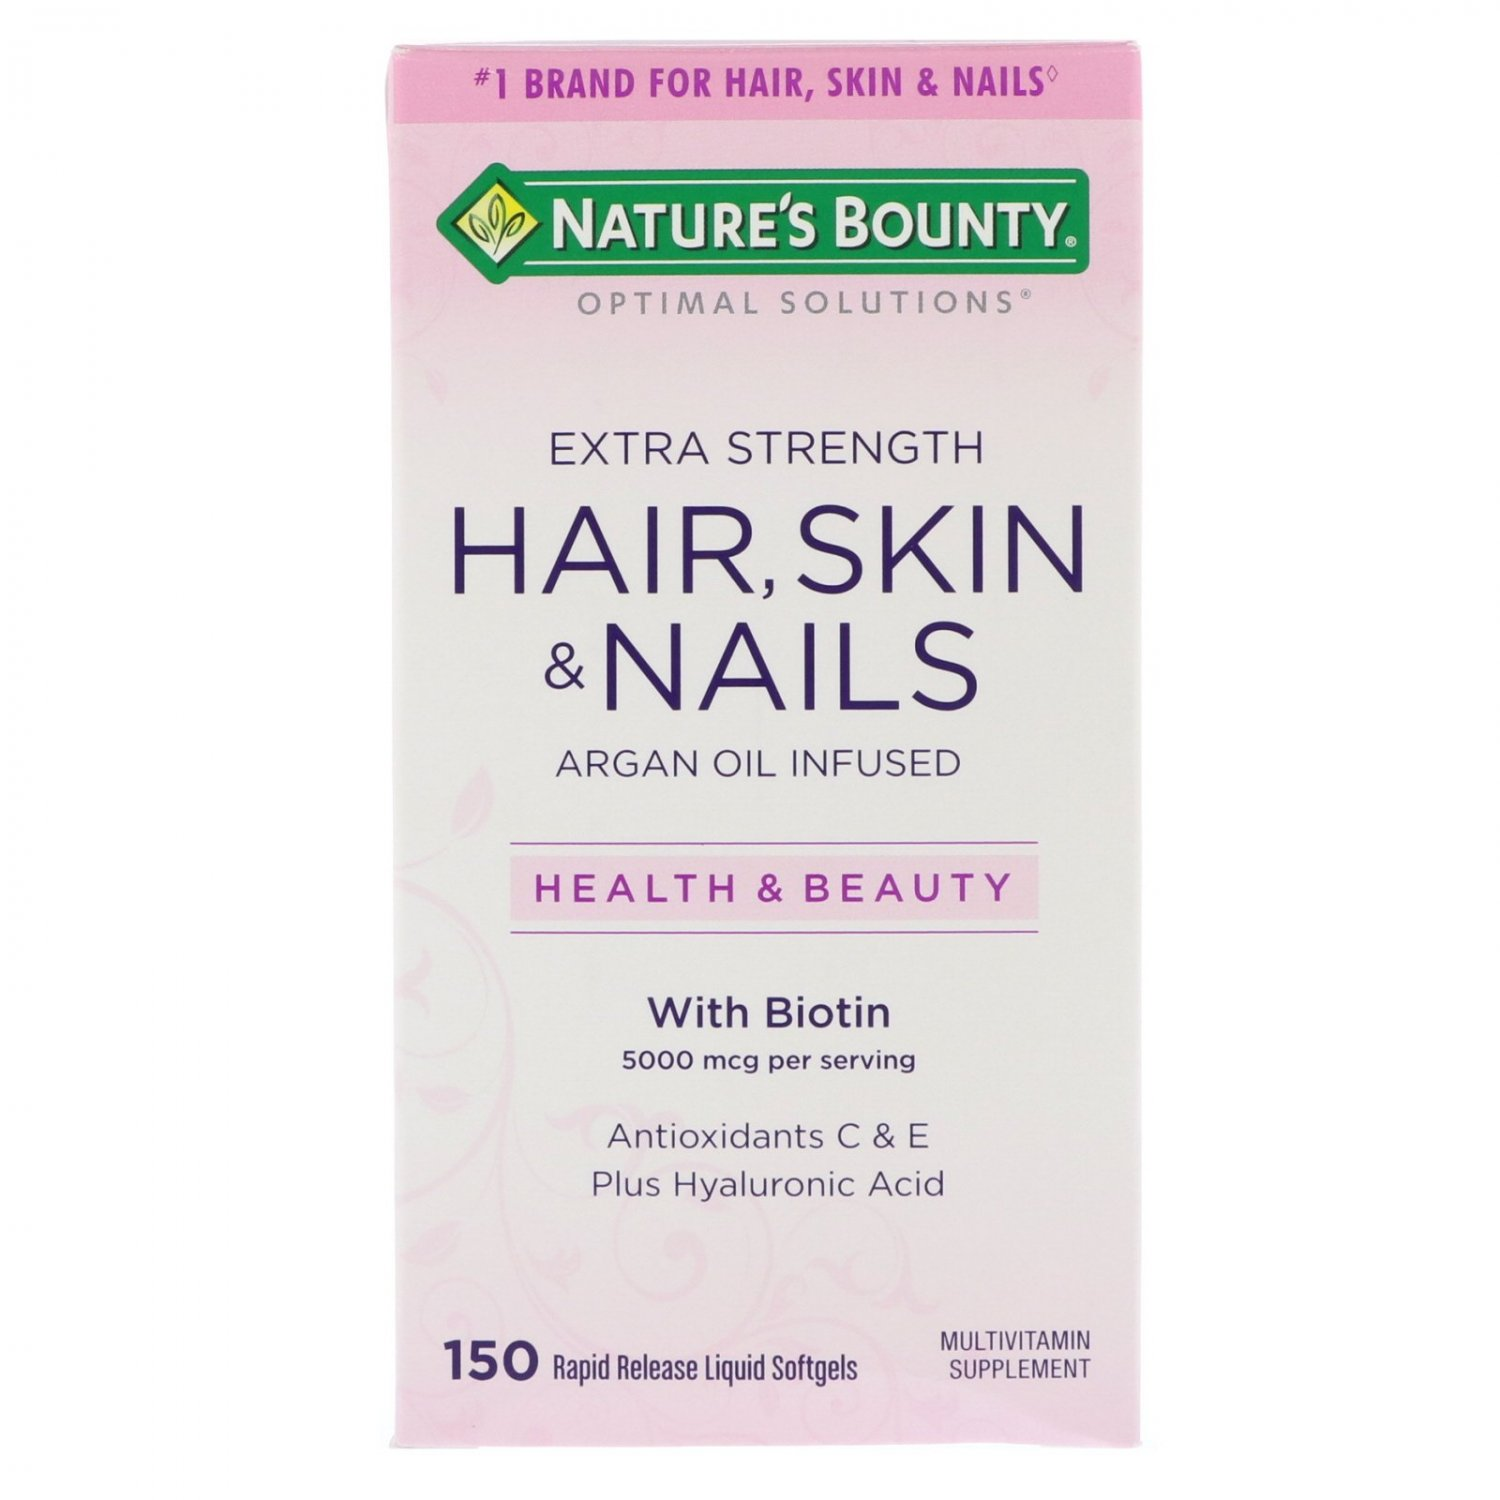 Nature's Bounty, Optimal Solutions, Extra Strength Hair, Skin & Nails, 150 Rapid Release Liq Soft